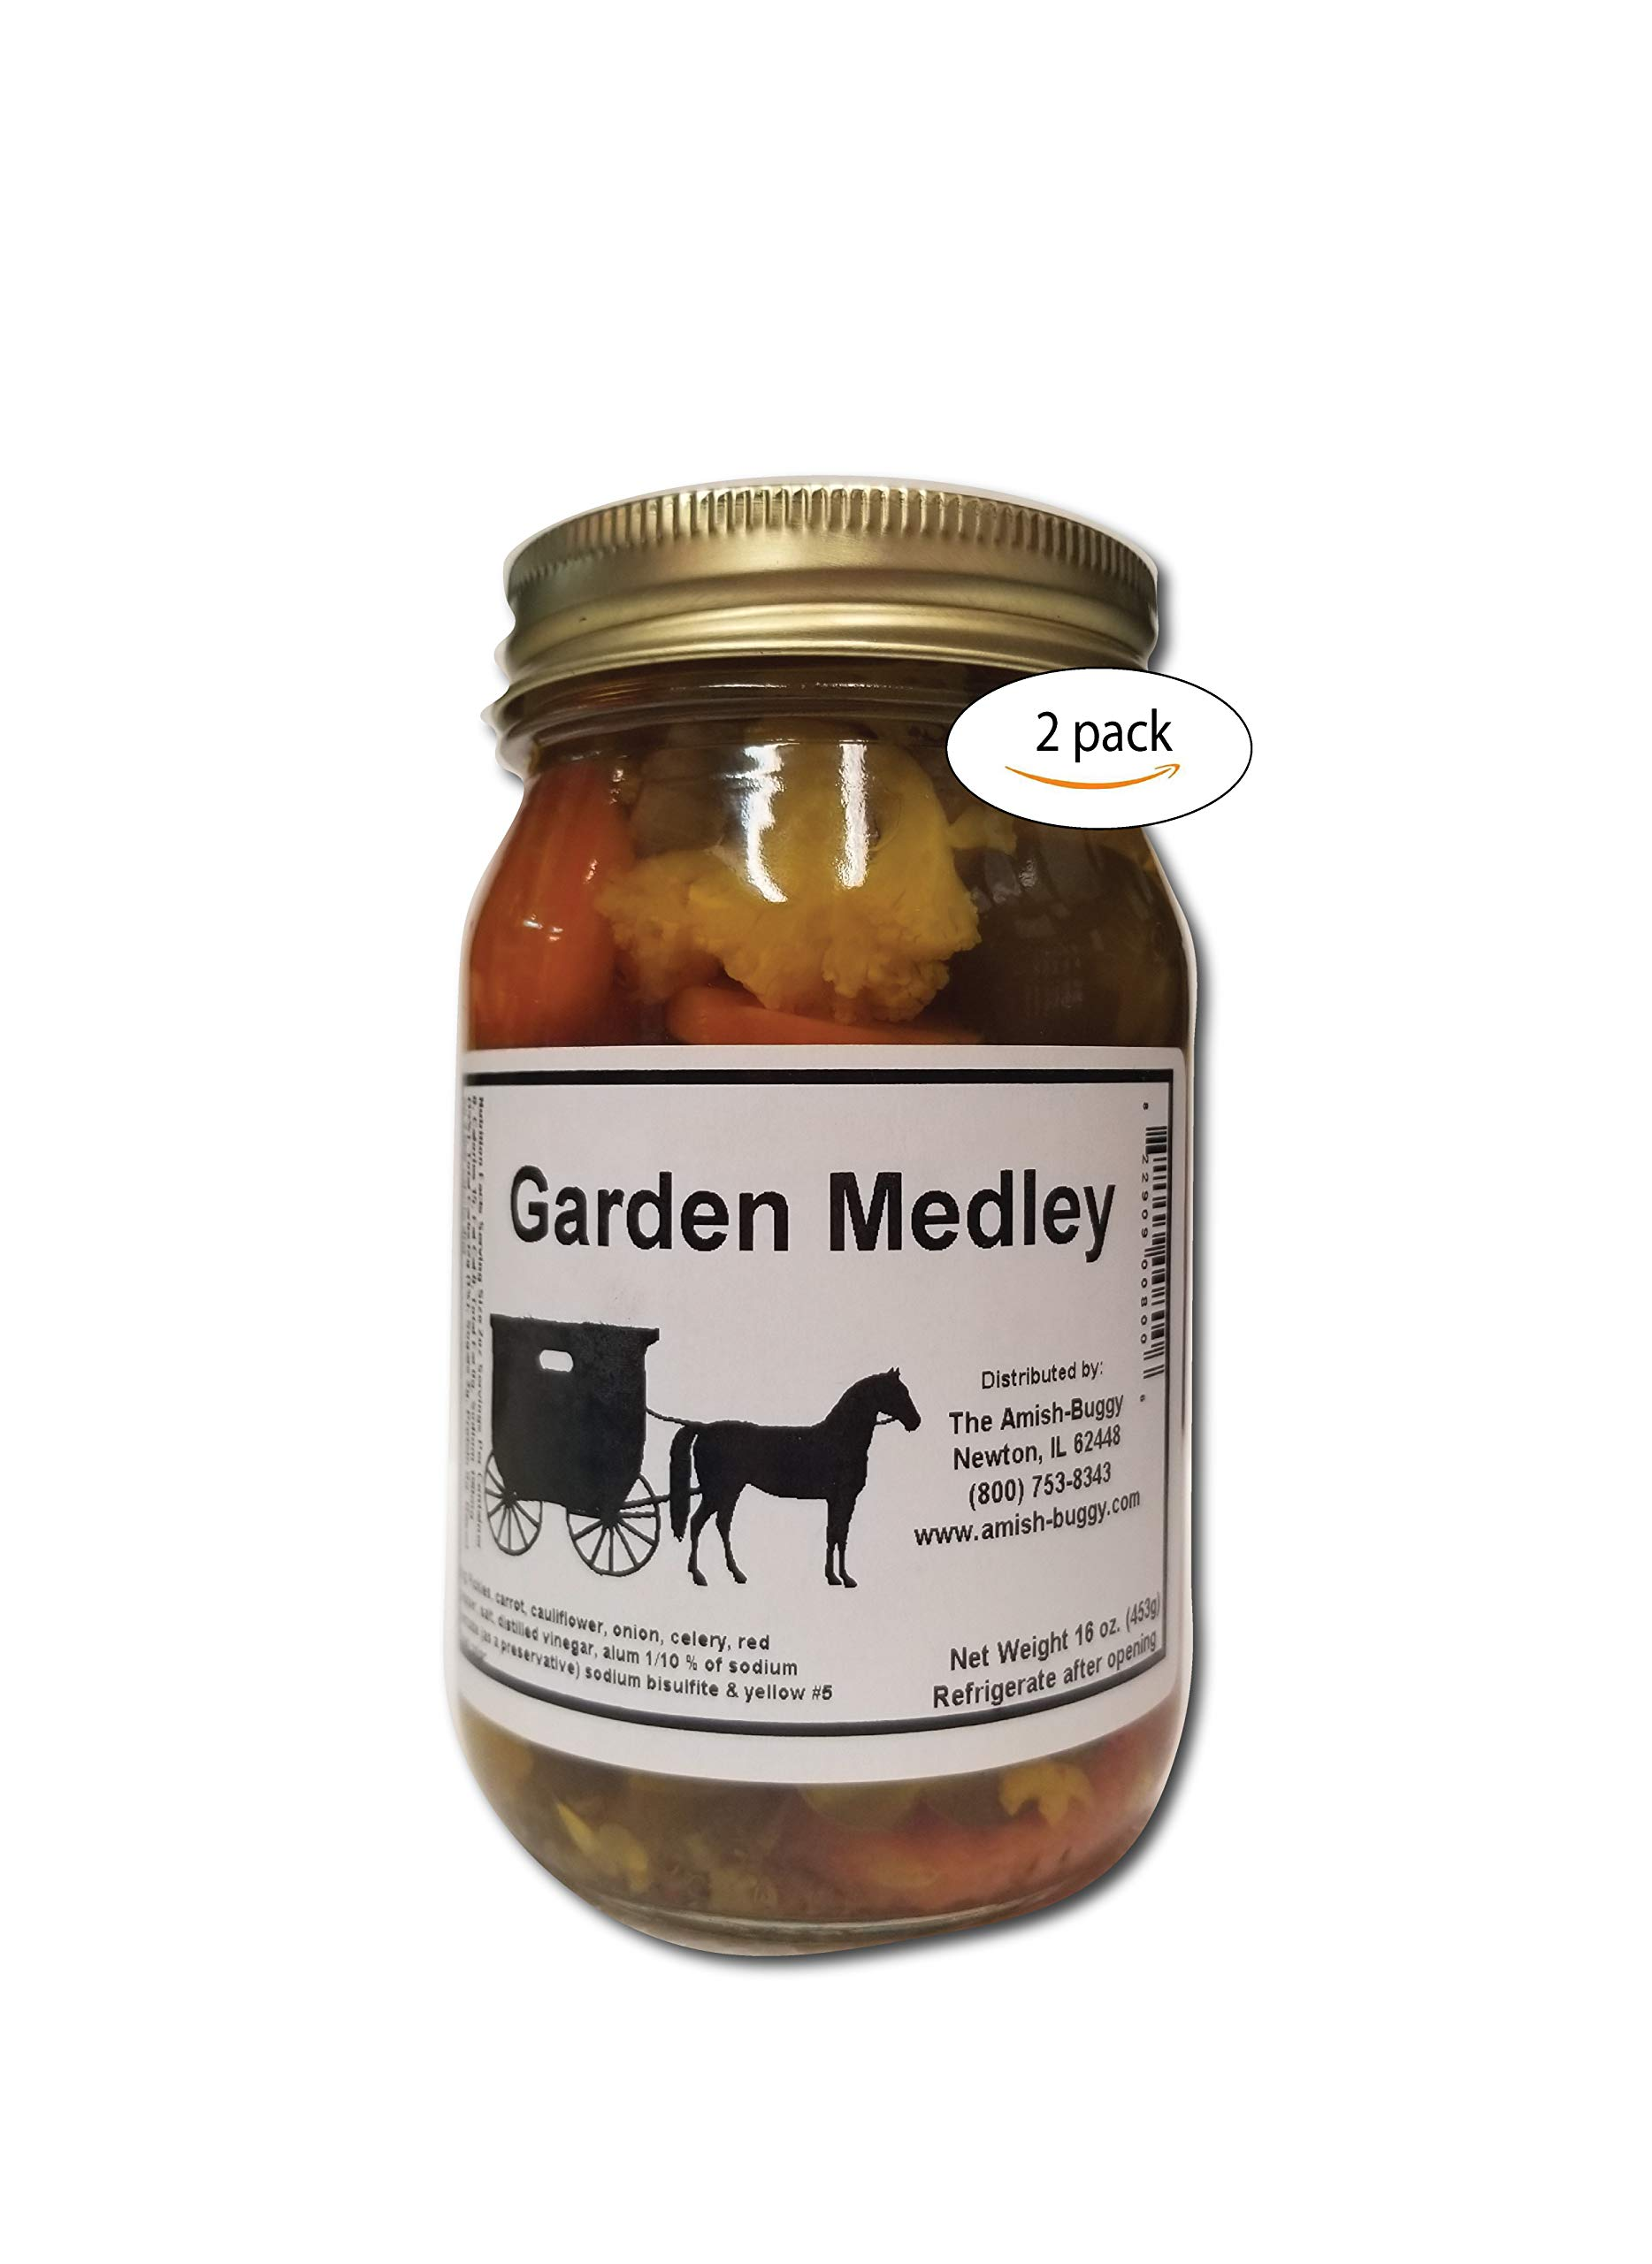 Pickled Vegetables - Two jars (Garden Medley) by The Amish-Buggy